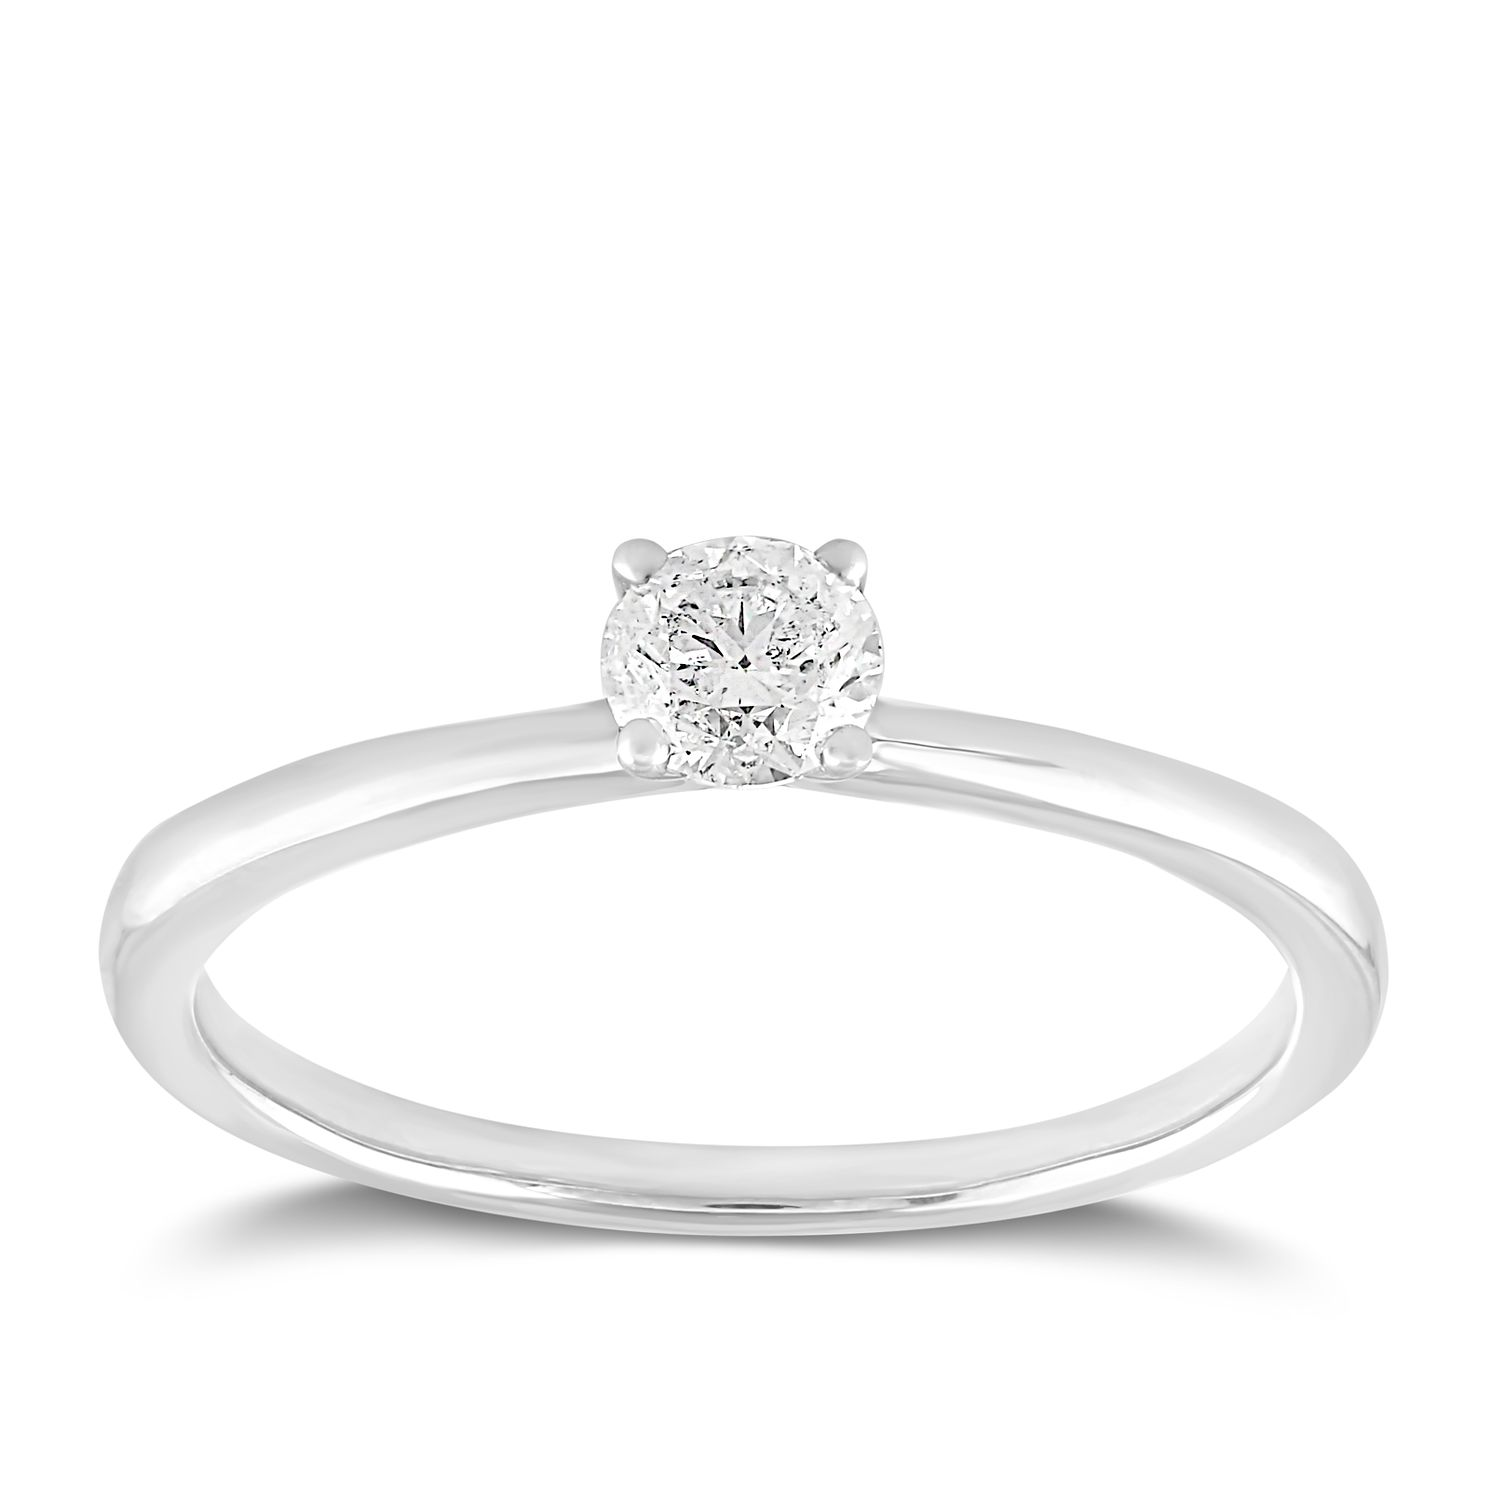 18ct White Gold 1/4ct Claw Set Solitaire Diamond Ring - Product number 2356554